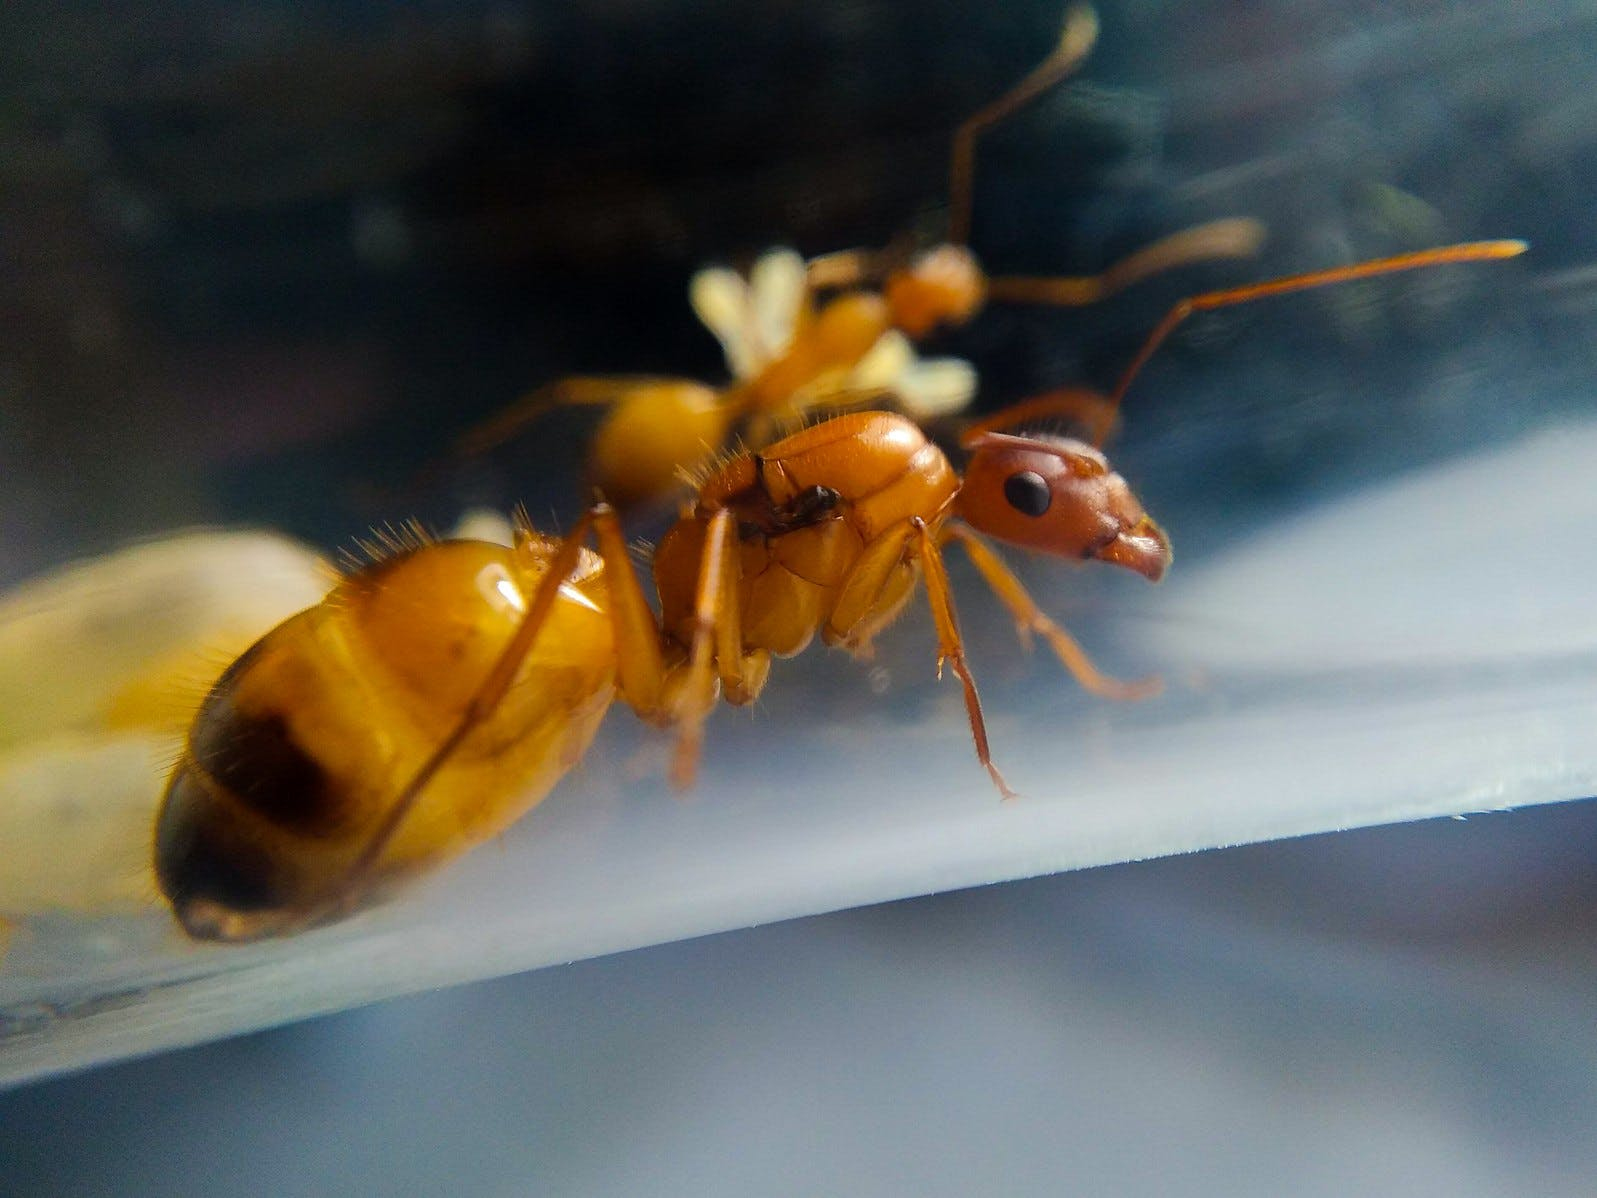 A queen of the ant species  Camponotus pilicornis